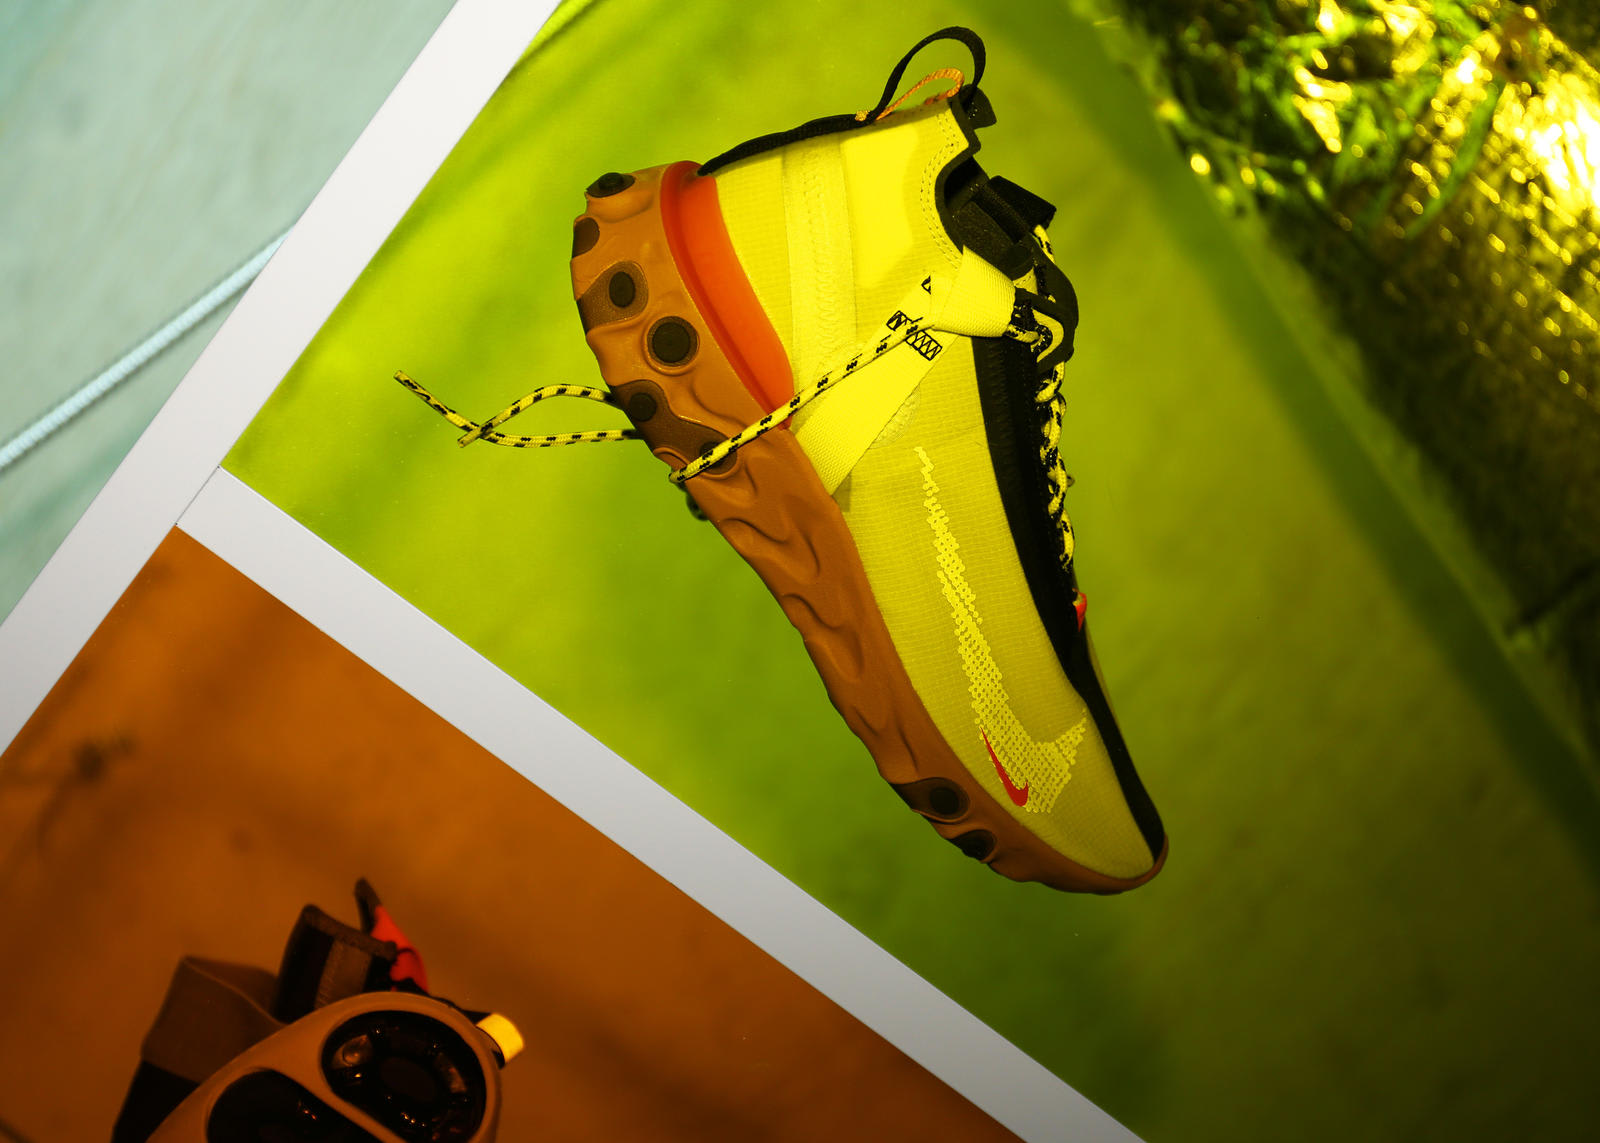 d3d86dd448c4 Nike s footwear design has always been predicated on solving problems for  athletes. ISPA is a new program led by Nike Sportswear s special projects  team ...